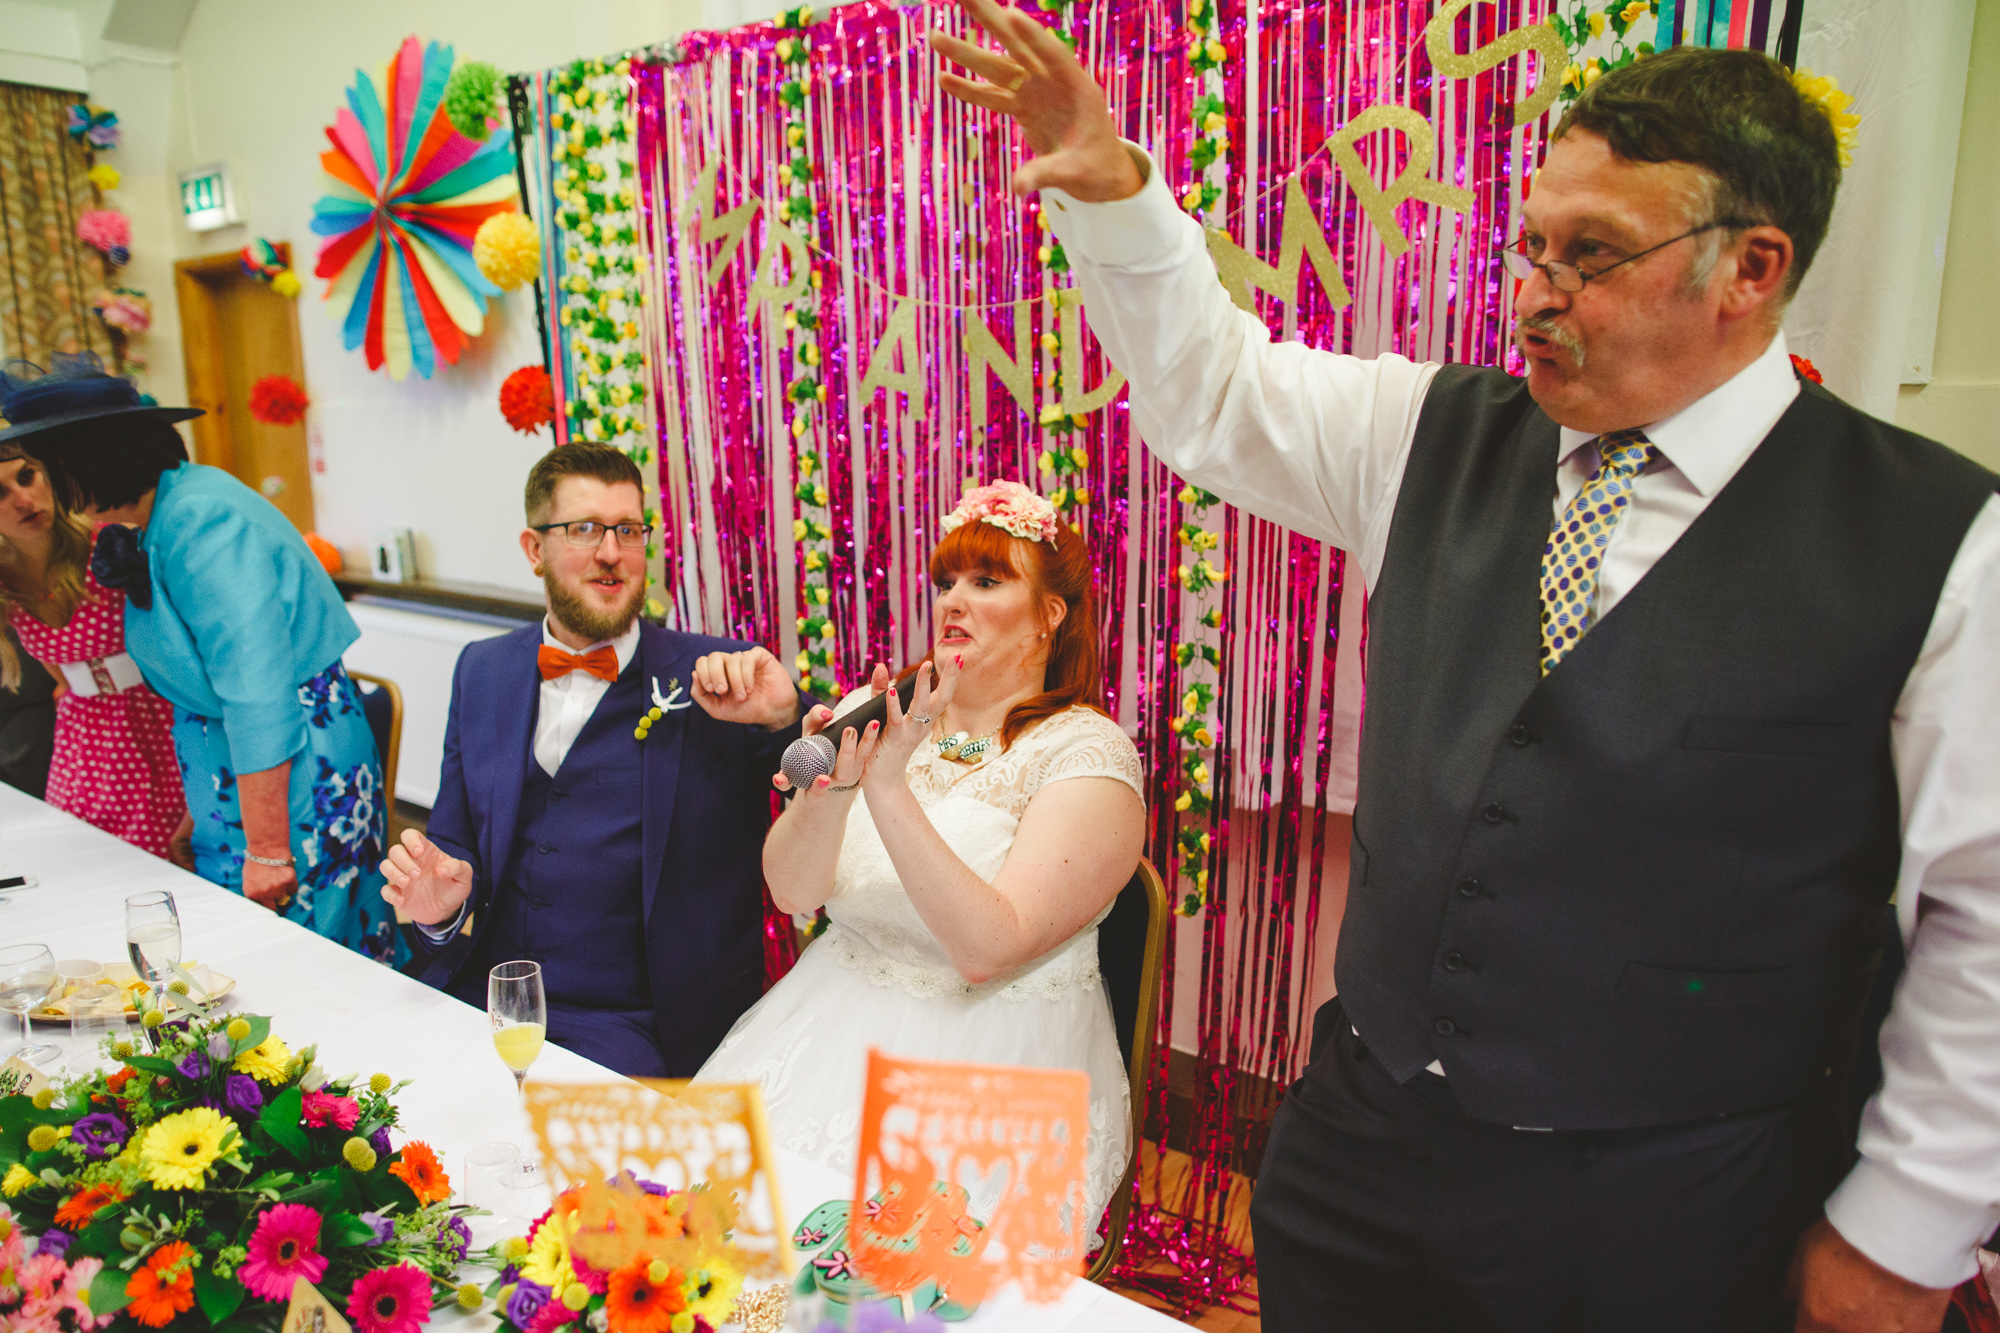 alternative-wedding-photographer-nottingham-camera-hannah-16.jpg